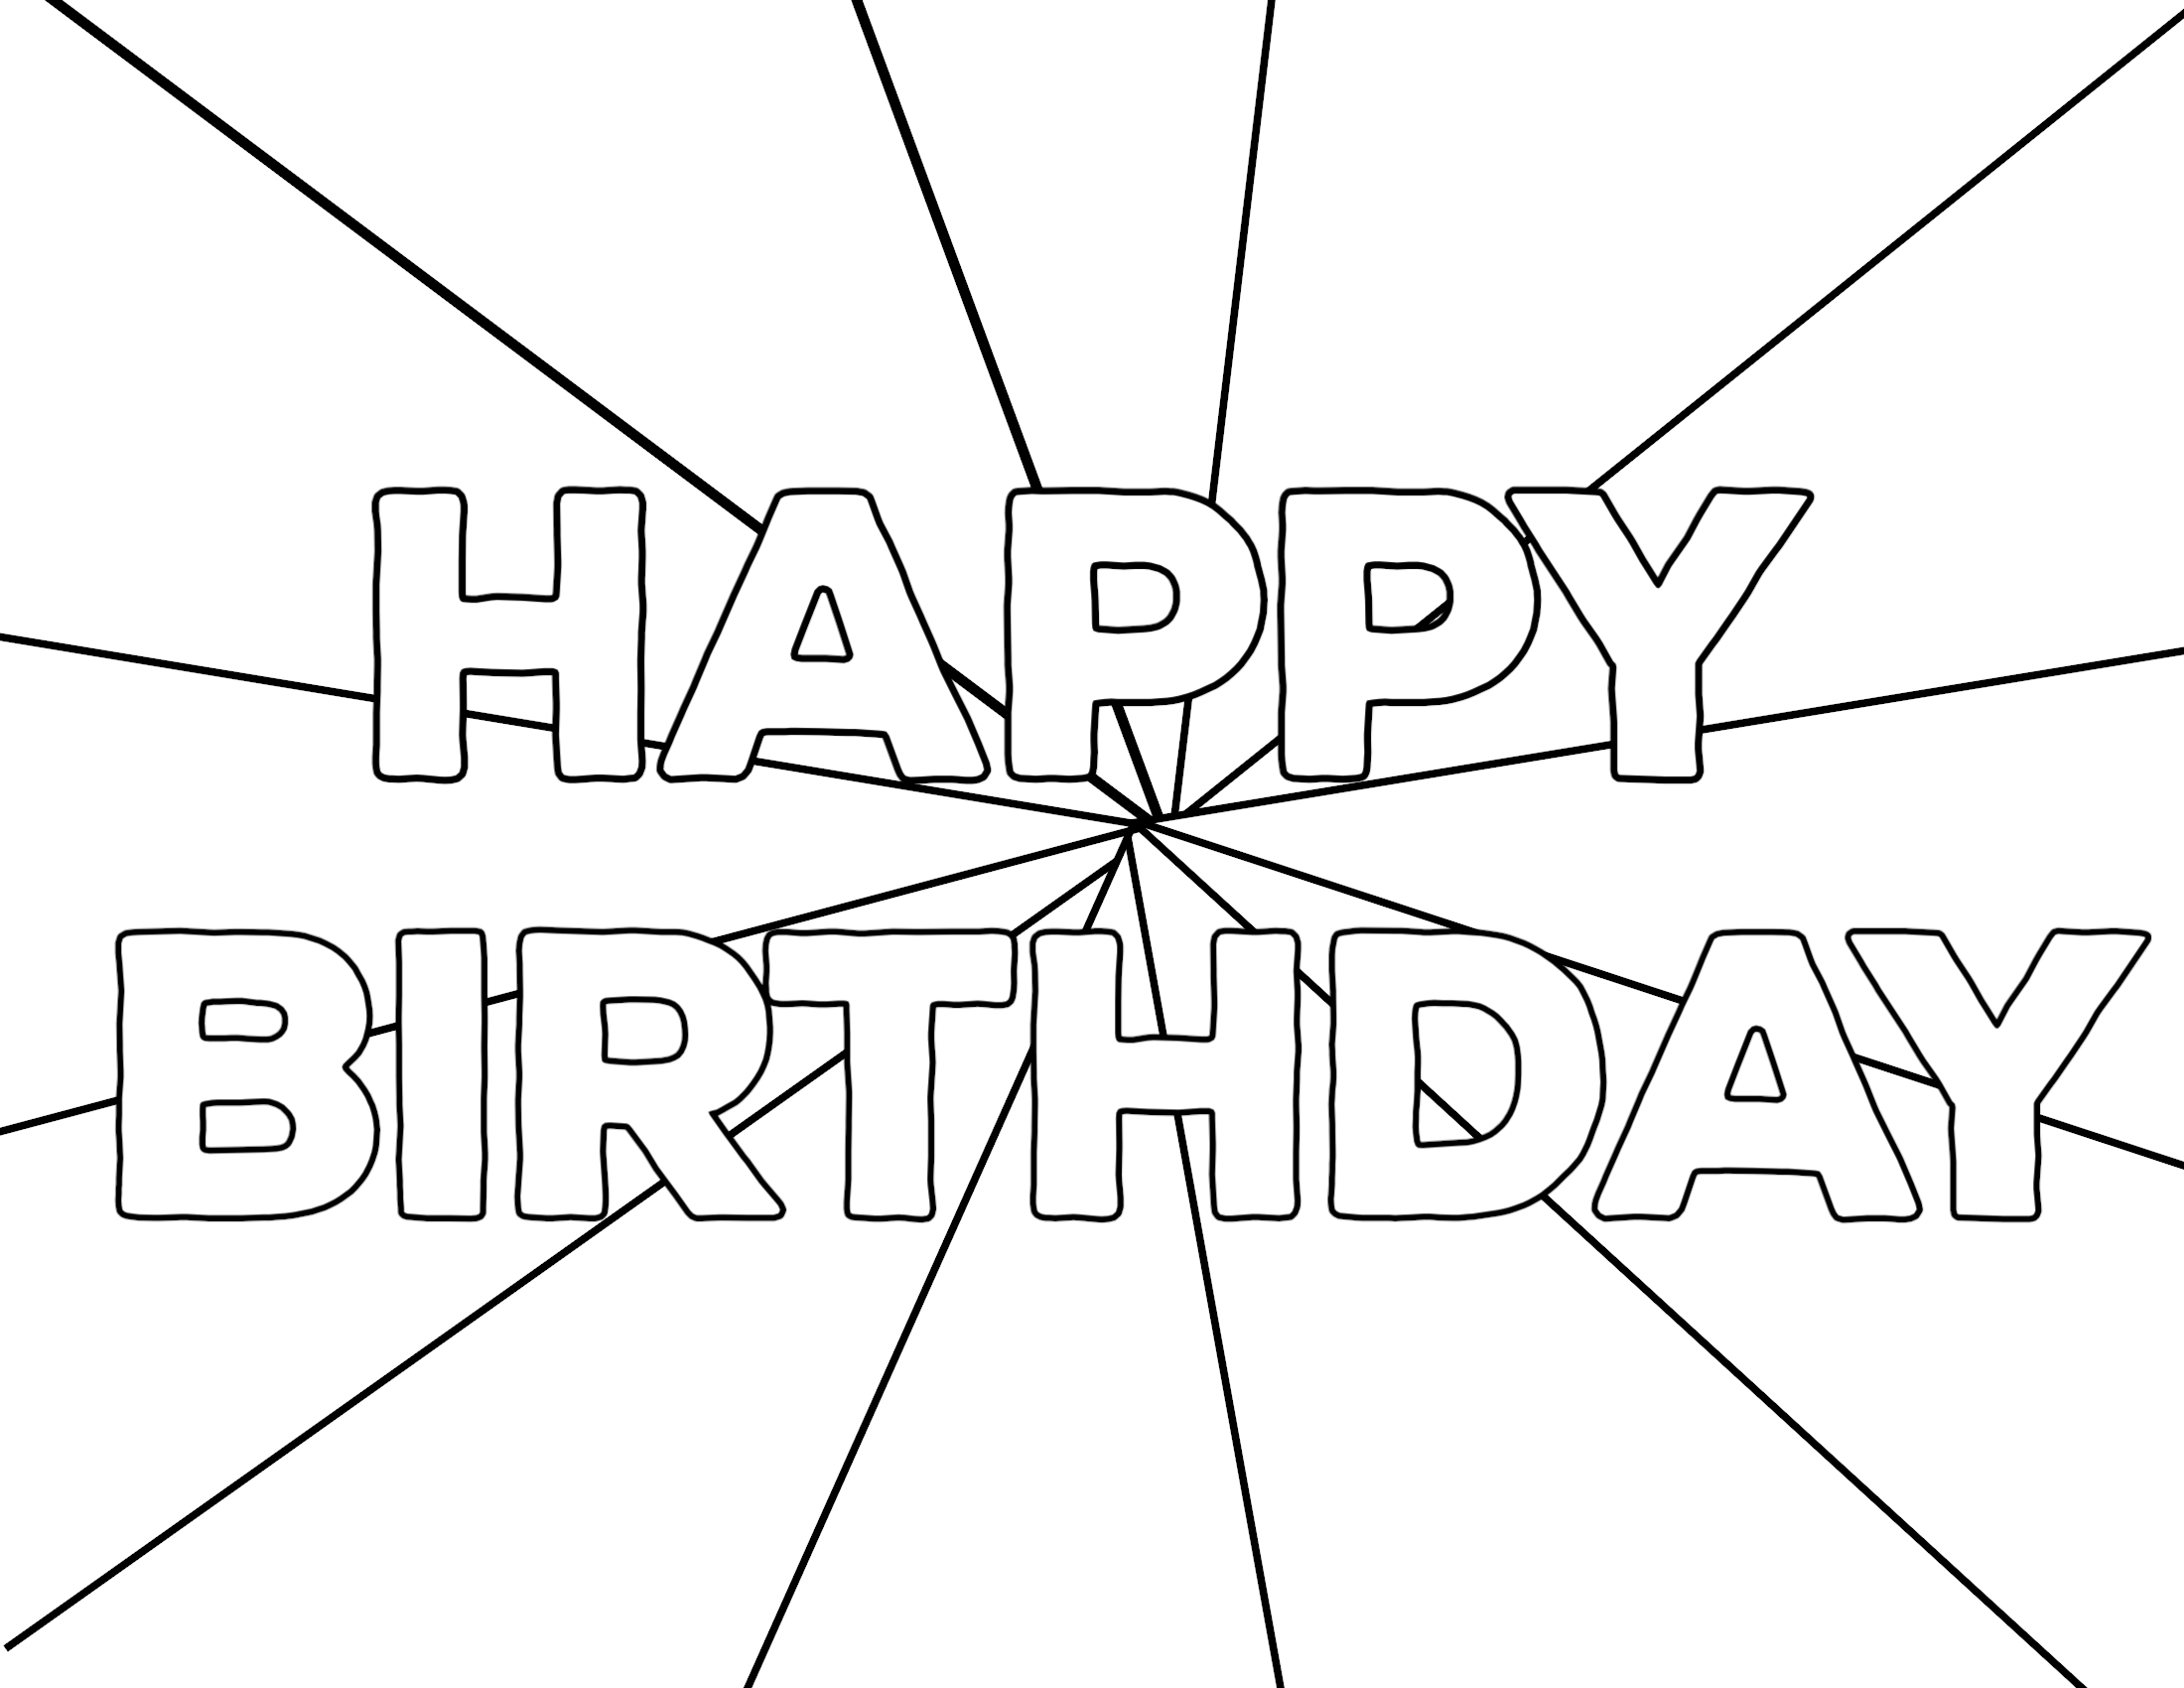 photograph about Printable Happy Birthday Coloring Pages called No cost Printable Satisfied Birthday Coloring Web pages - Paper Path